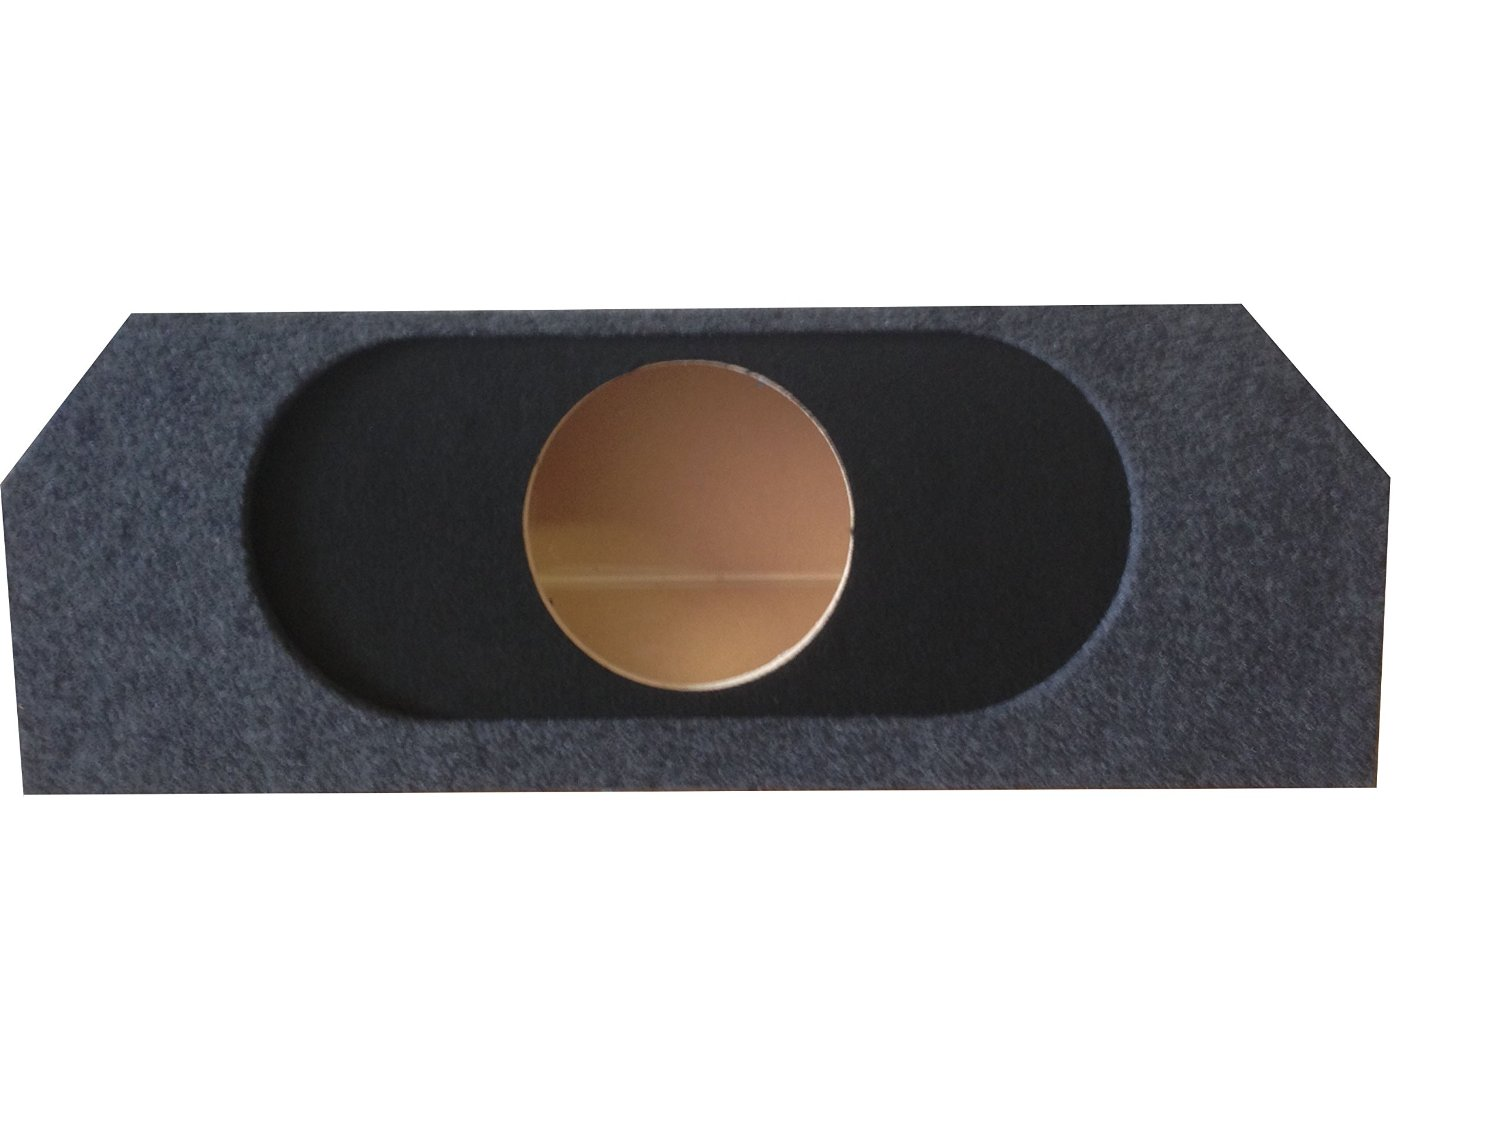 "Zenclosures 2011-2014 Mustang 1-10"" Subwoofer Box W/recessed Mounting Holes (Type 3)"